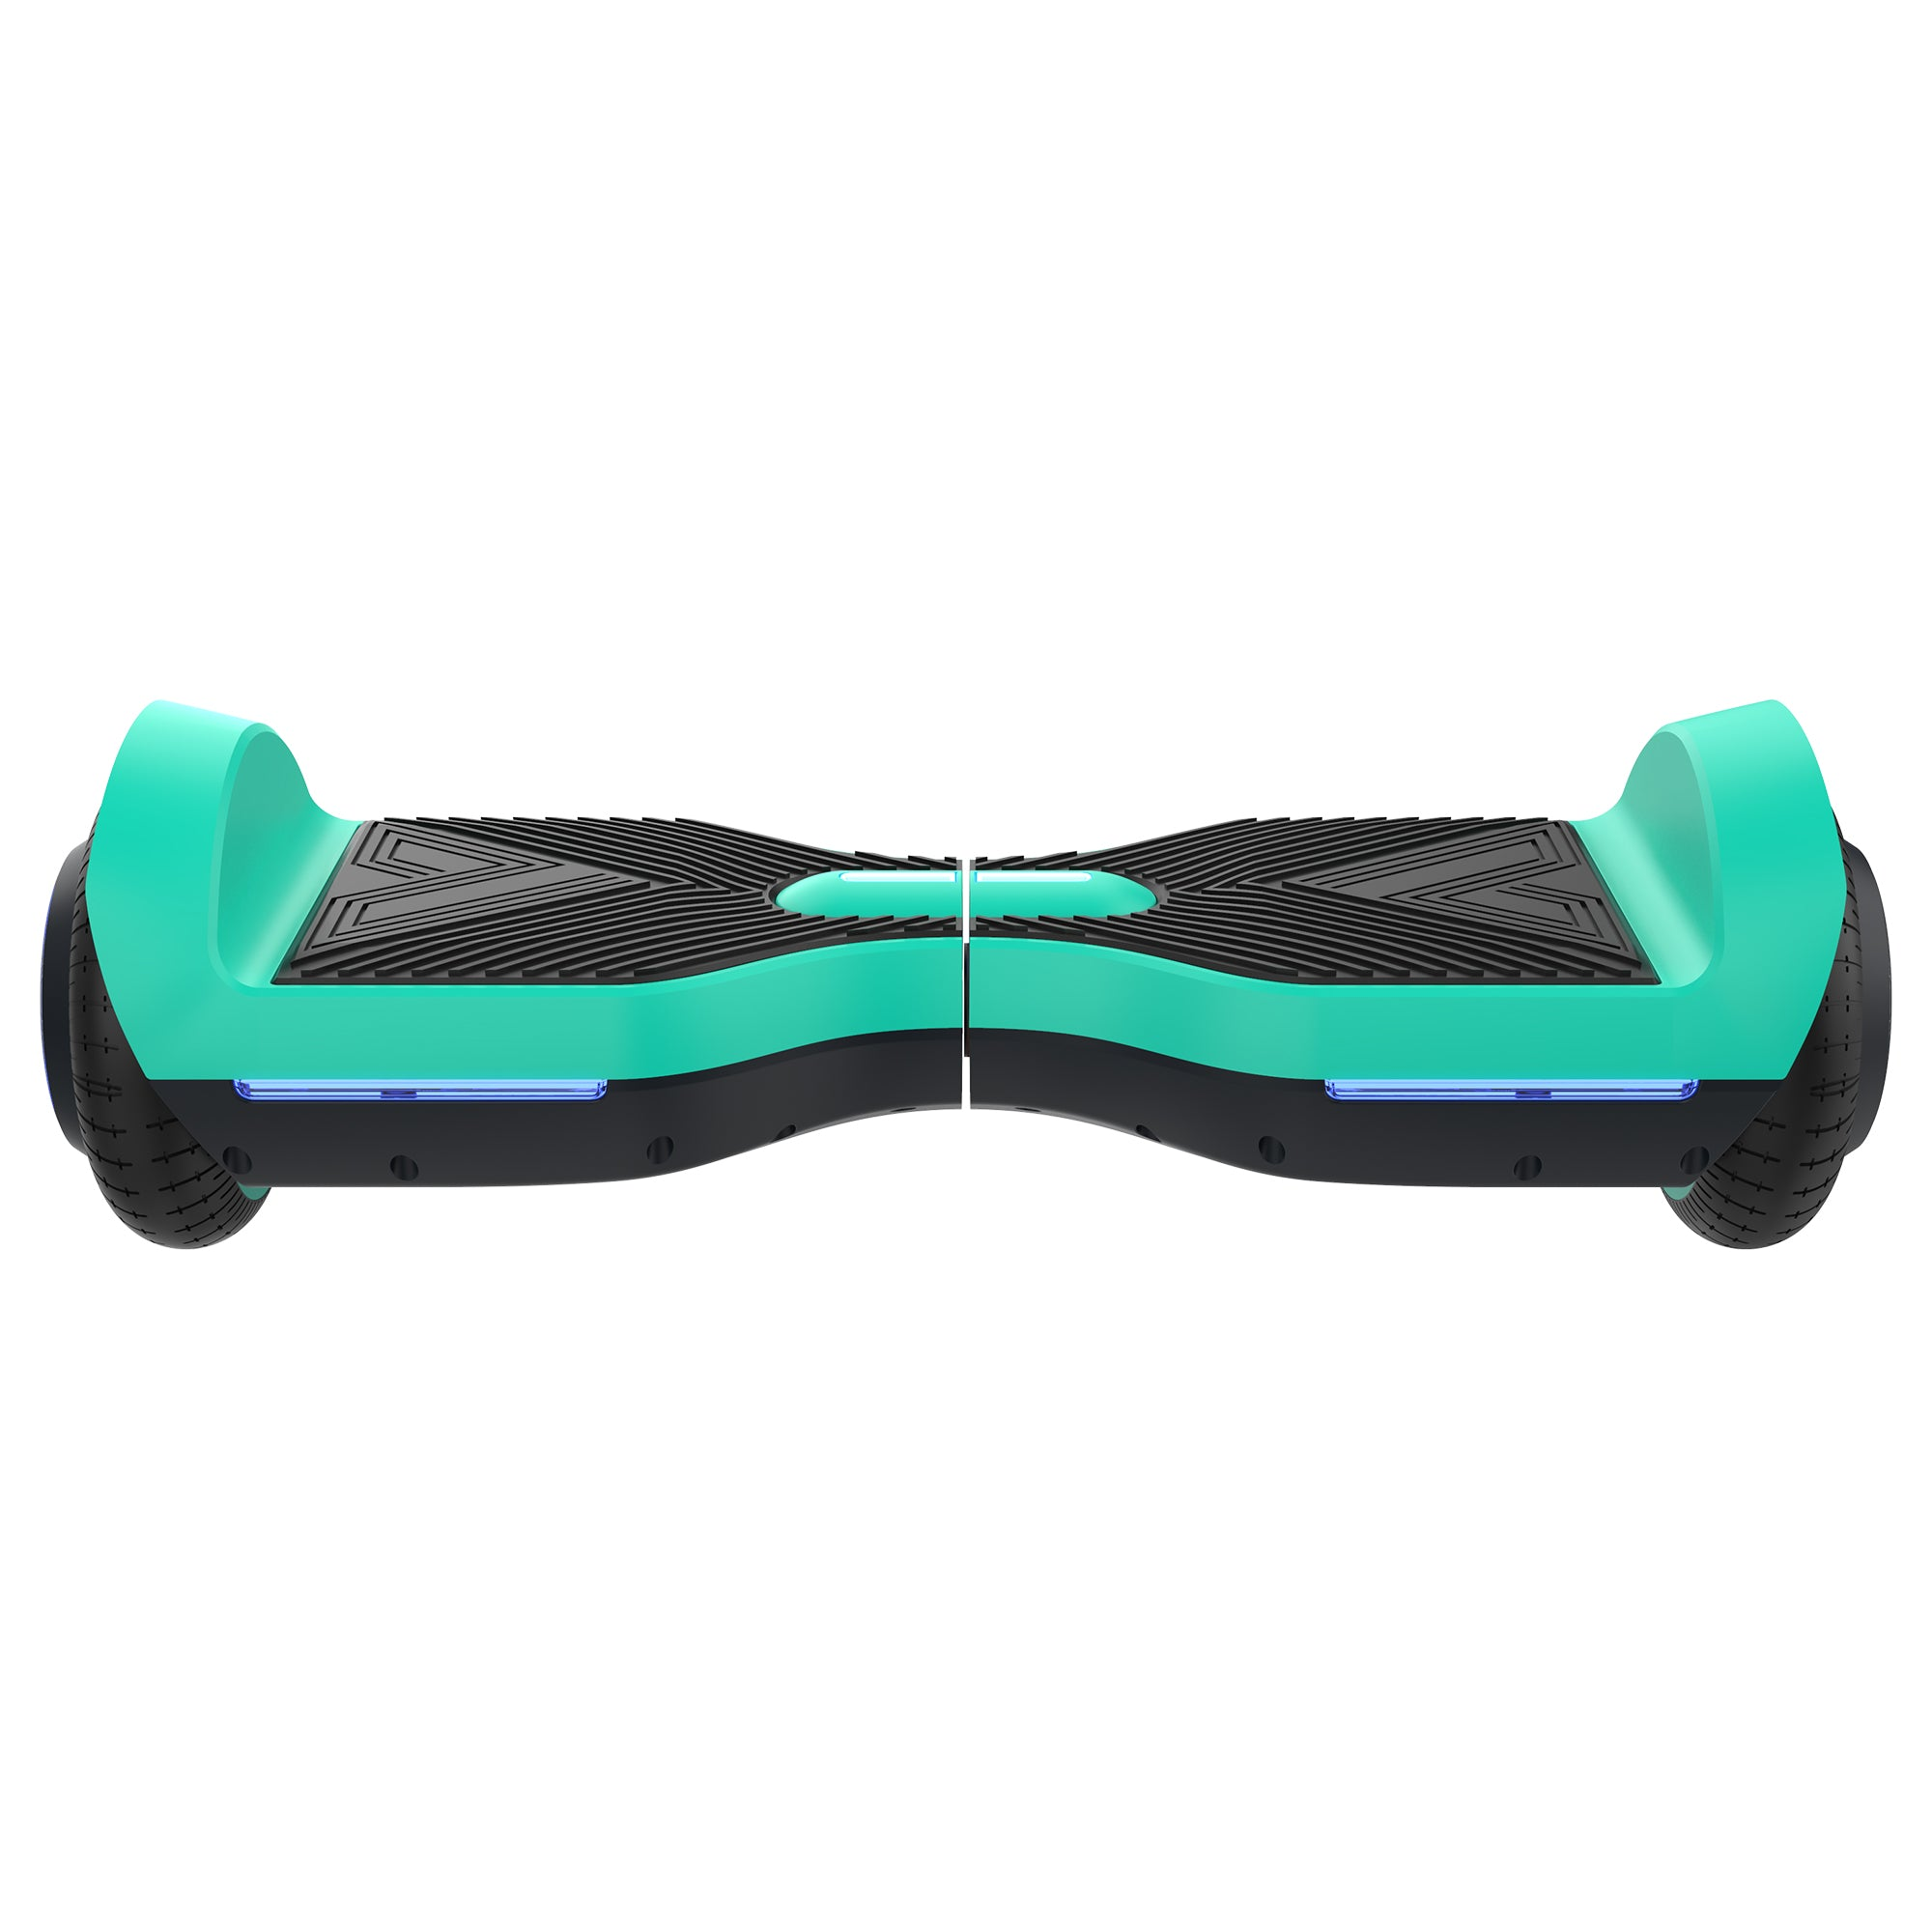 aqua front view SRX bluetooth hoverboard